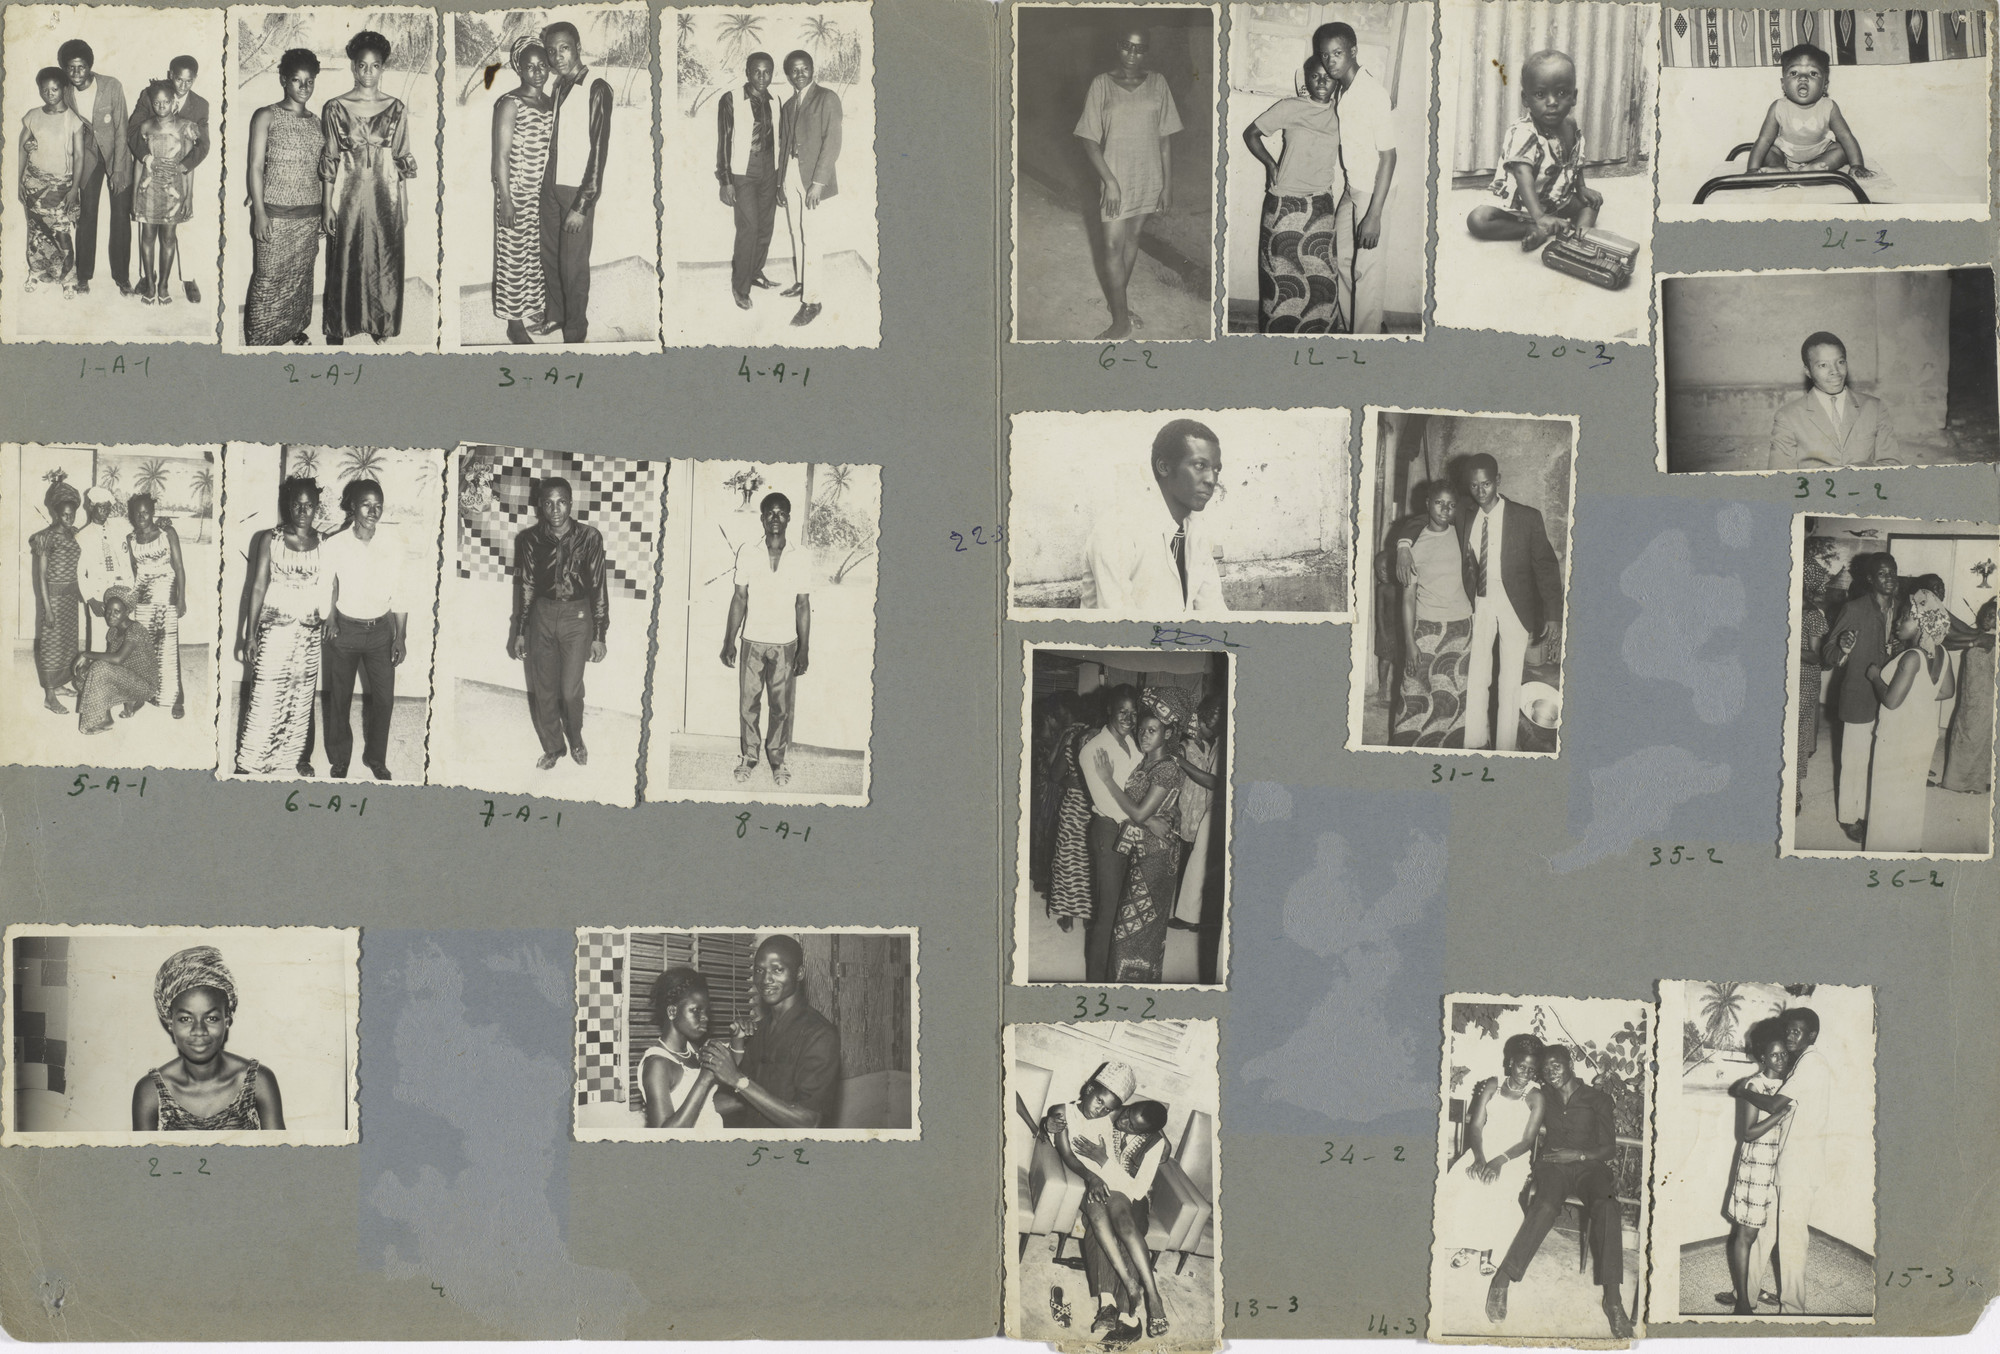 Malick Sidibé. Les Caïds (Big Shots). July 19, 1970